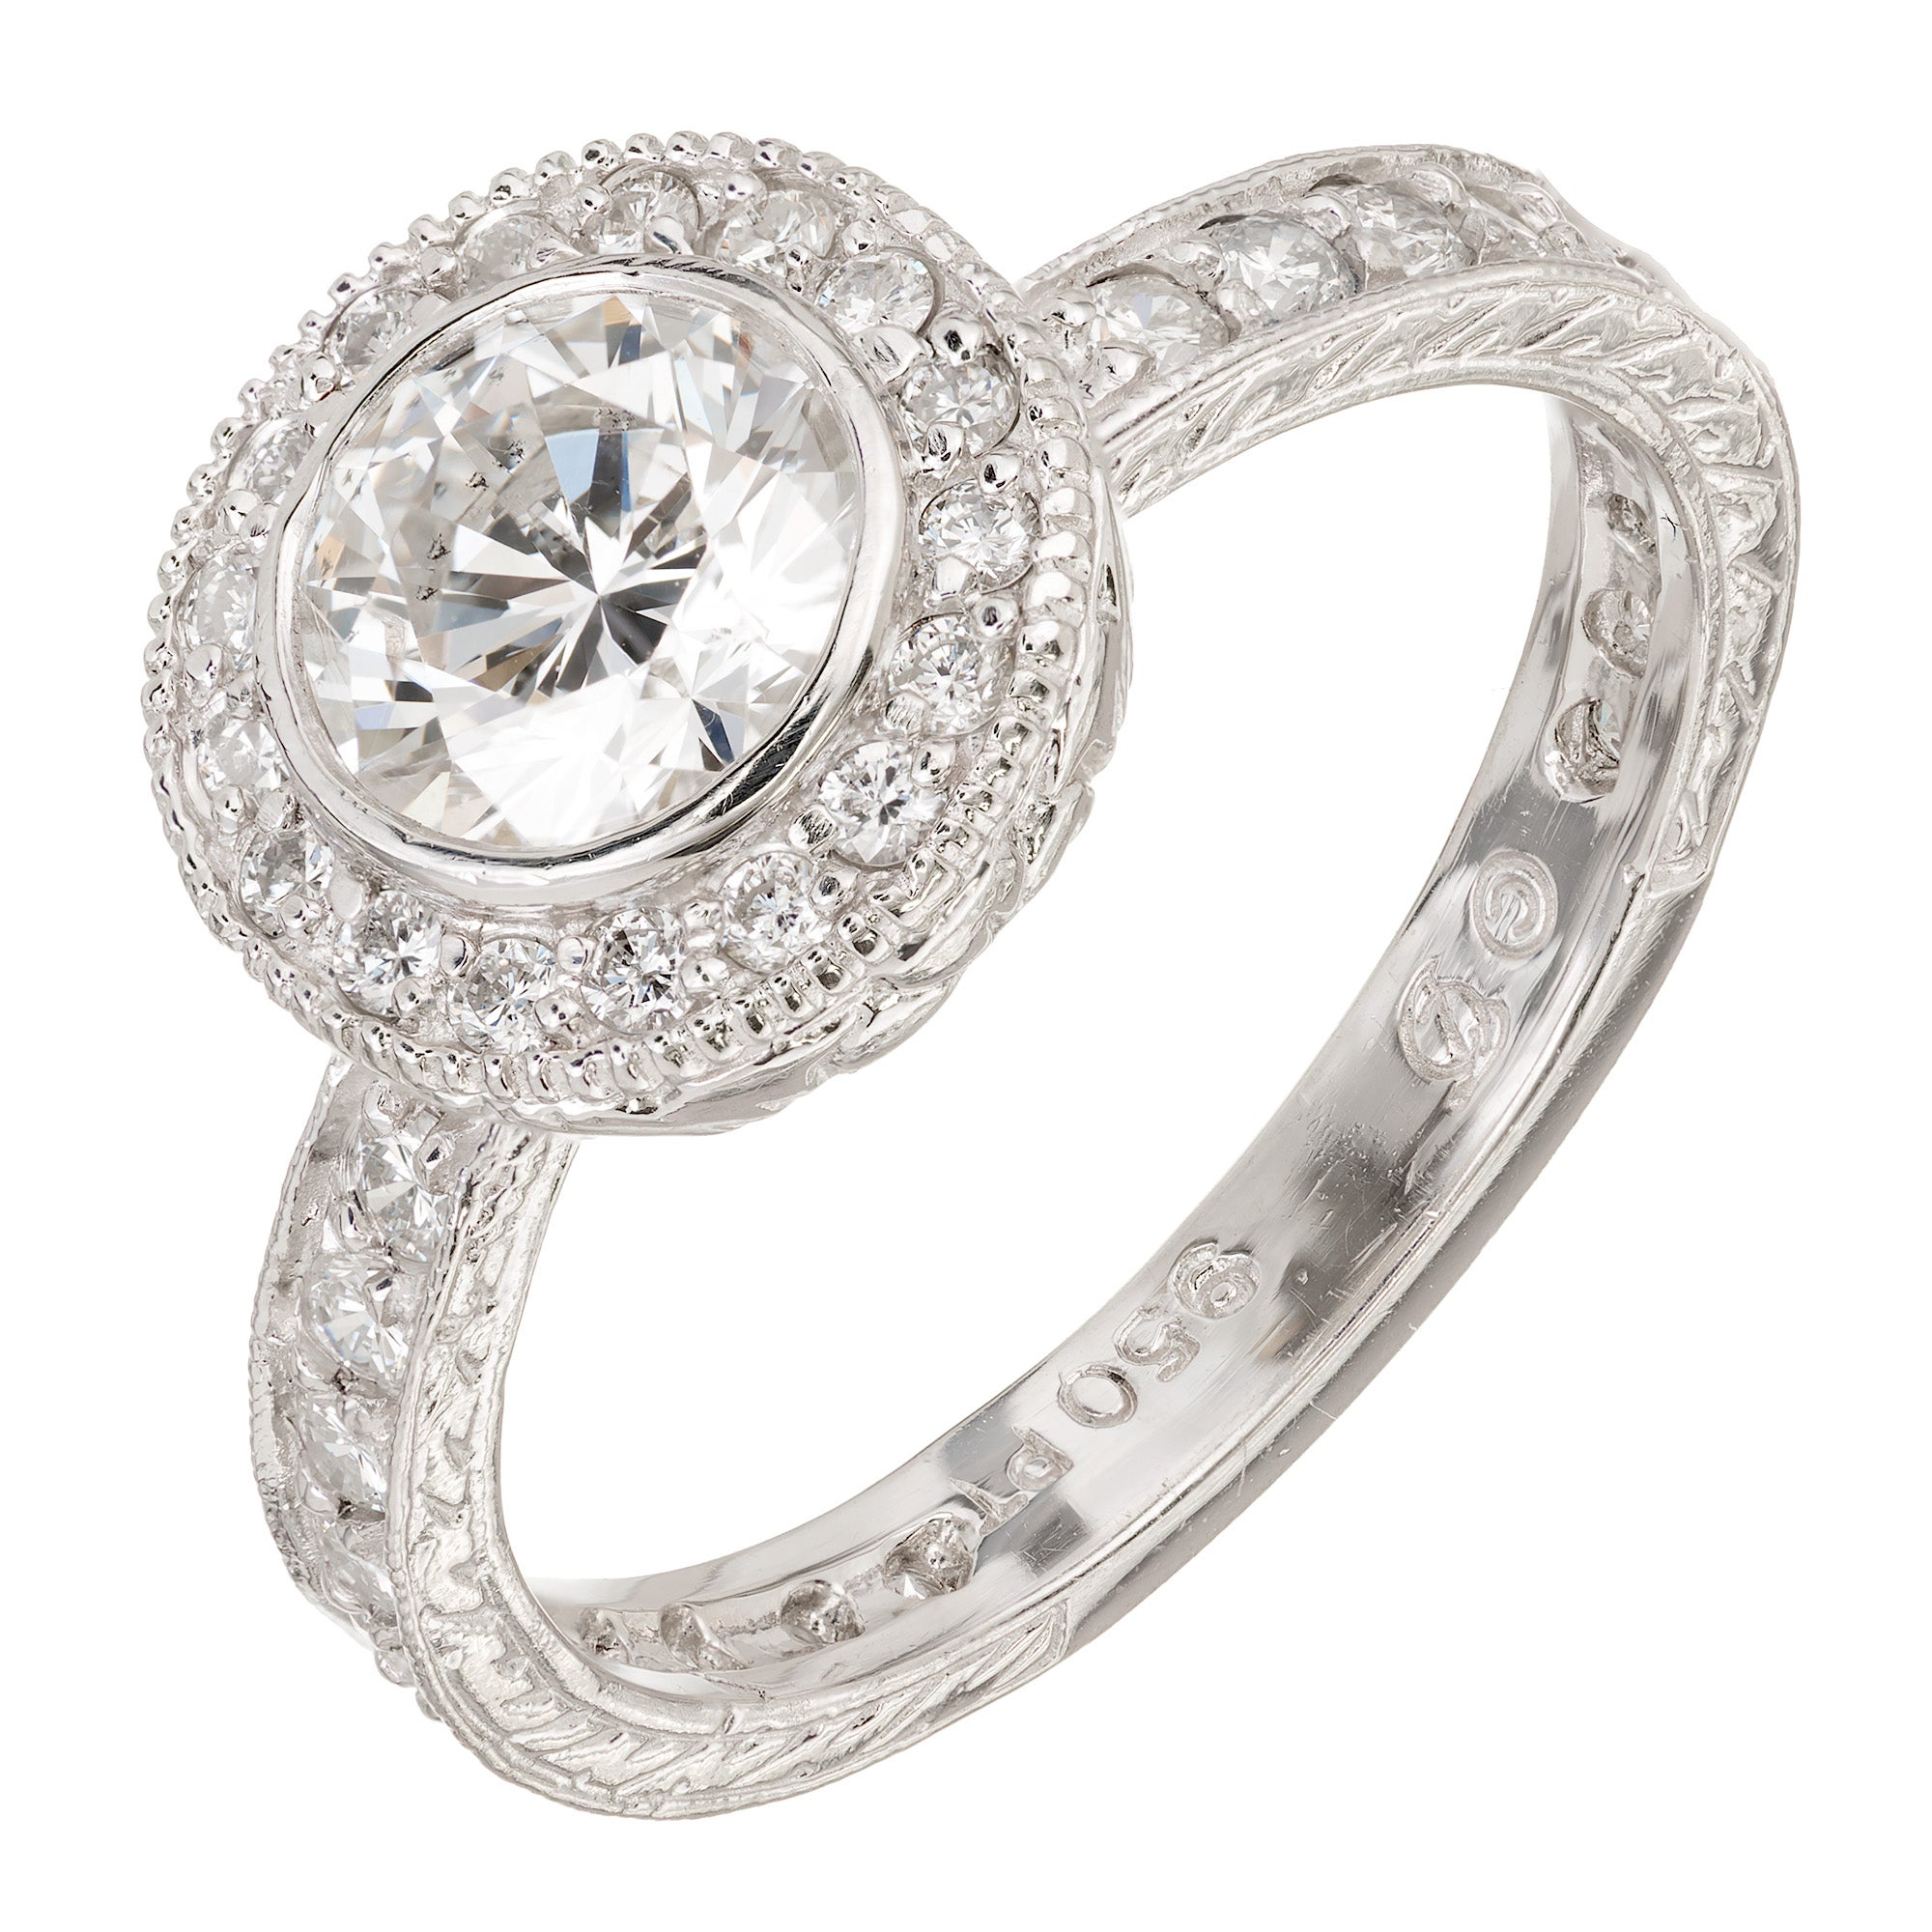 engagement image rings split cut ring mount halo mounted wedding diamond semi shank platinum mounts round marquise